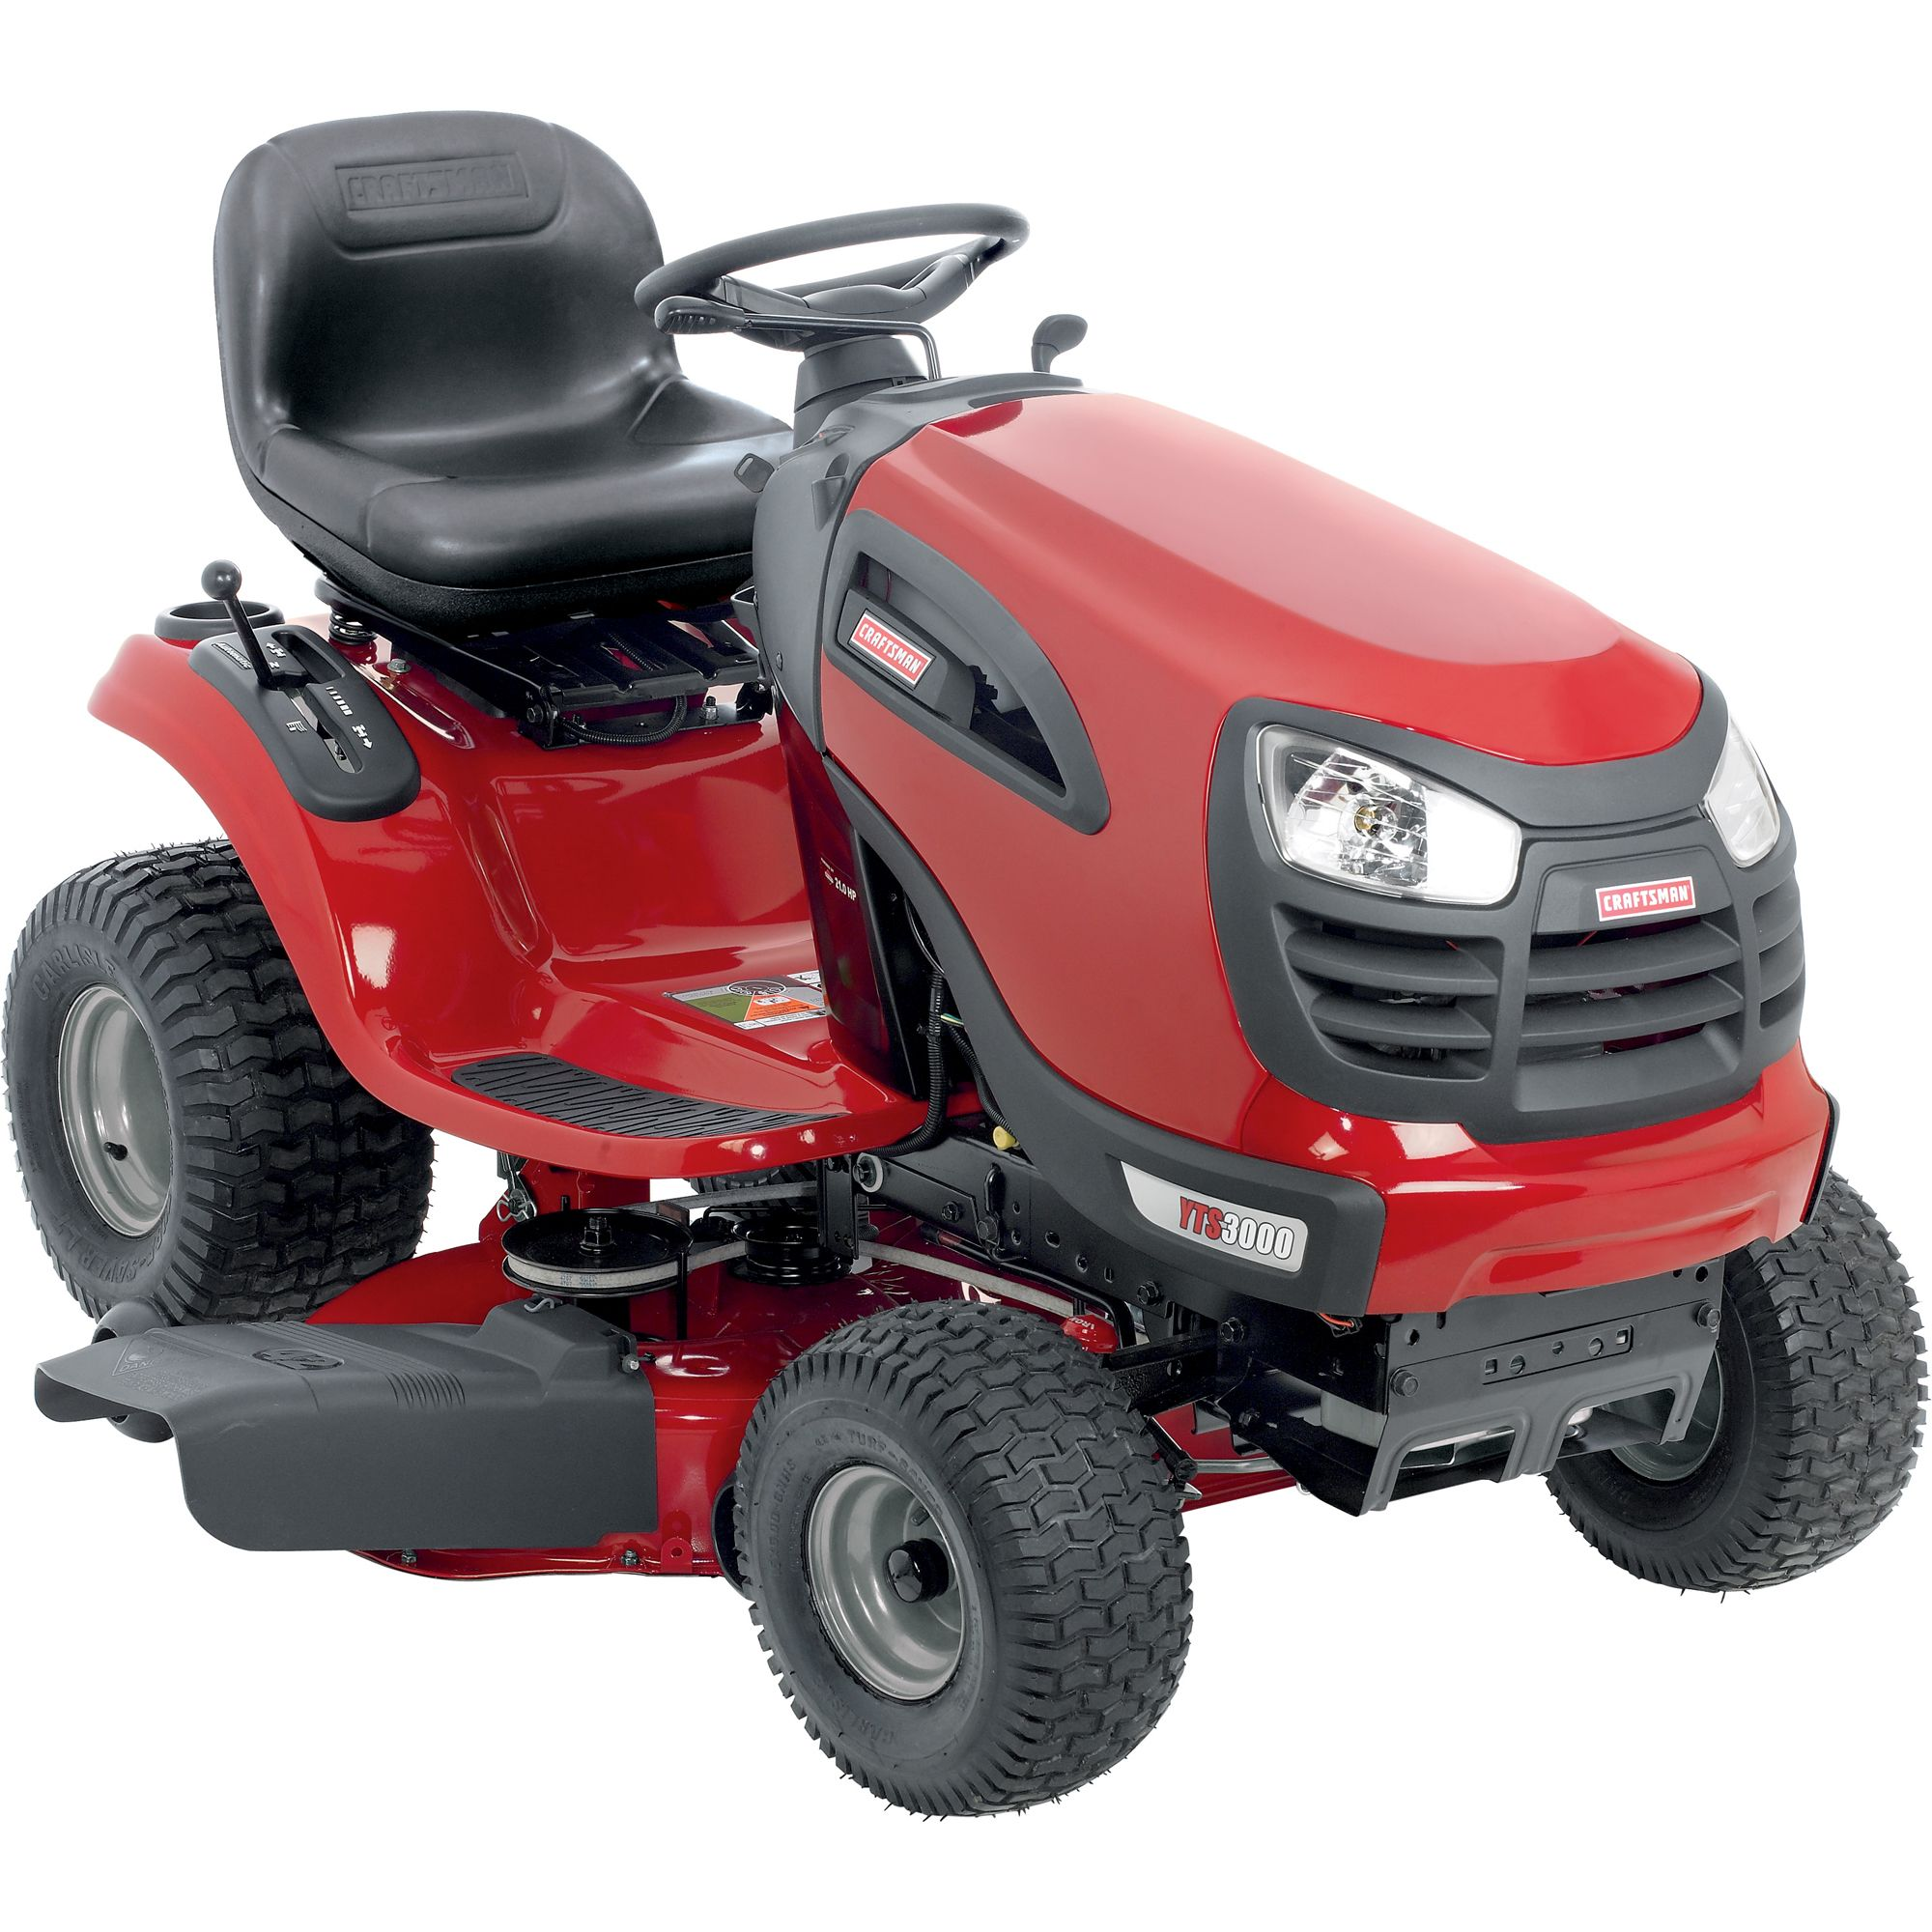 small resolution of looking for craftsman model 917289223 front engine lawn tractor craftsman model 917 289223 wiring diagram